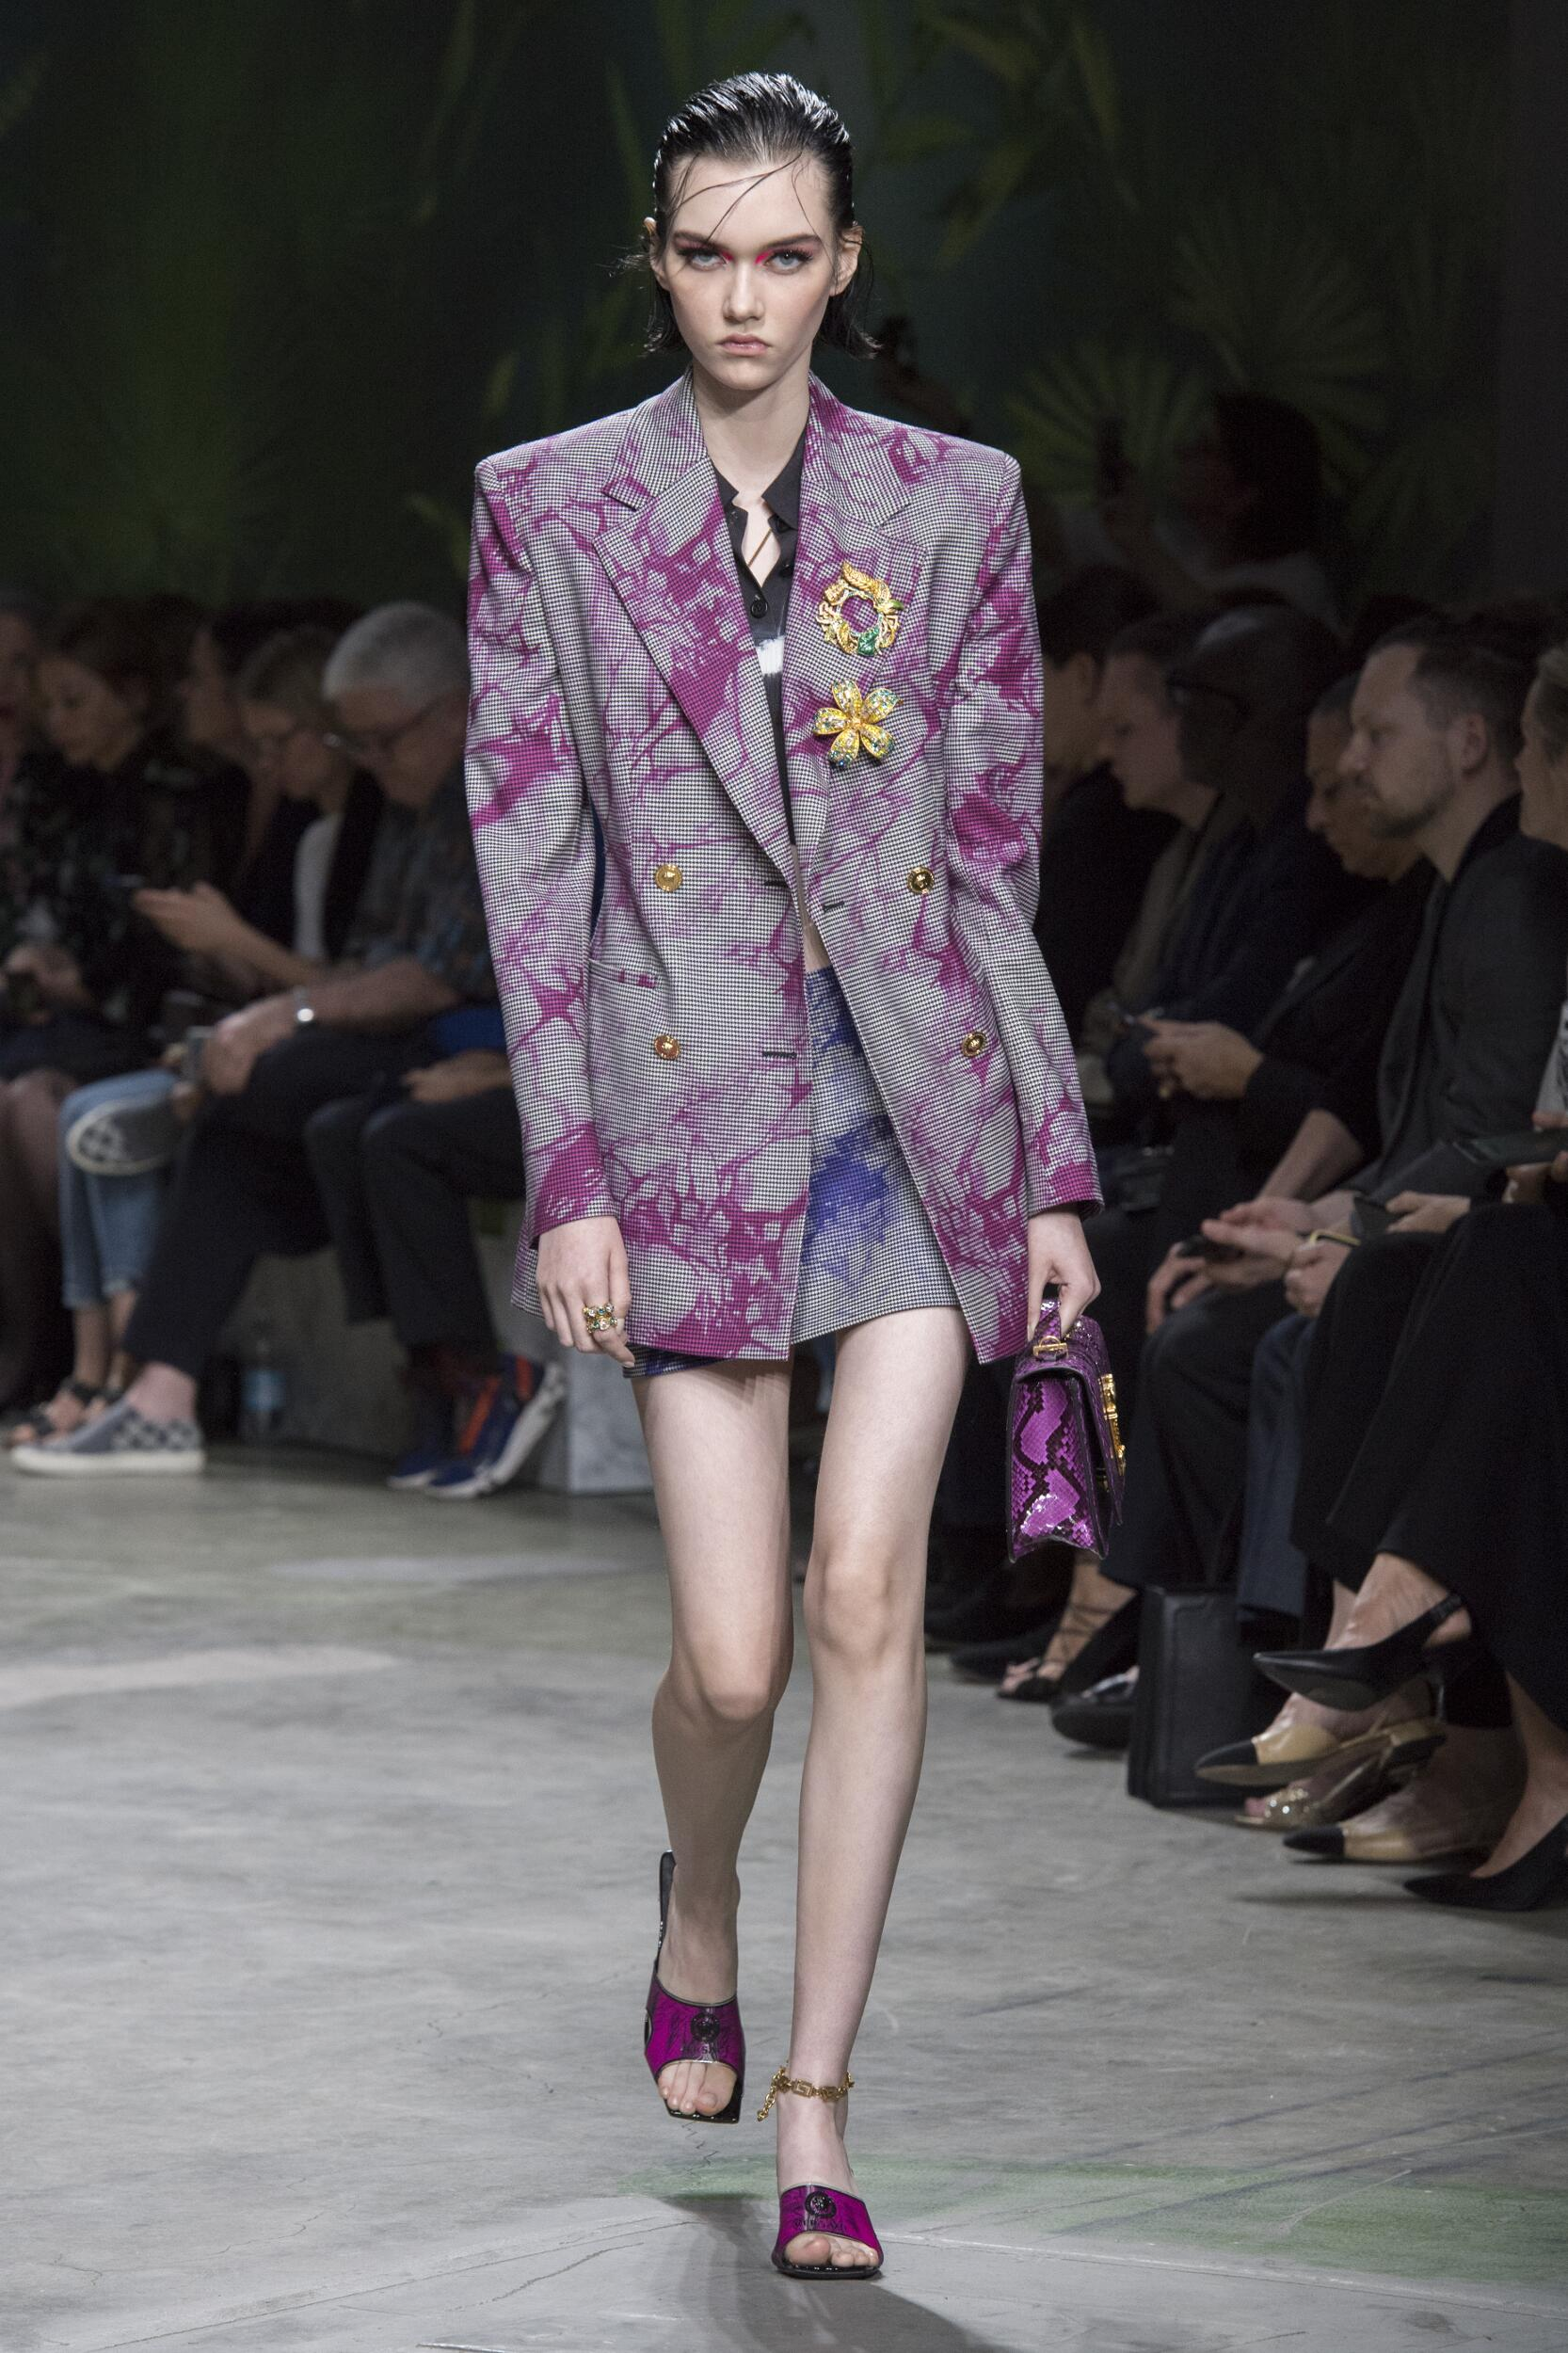 Catwalk Versace Woman Fashion Show Summer 2020